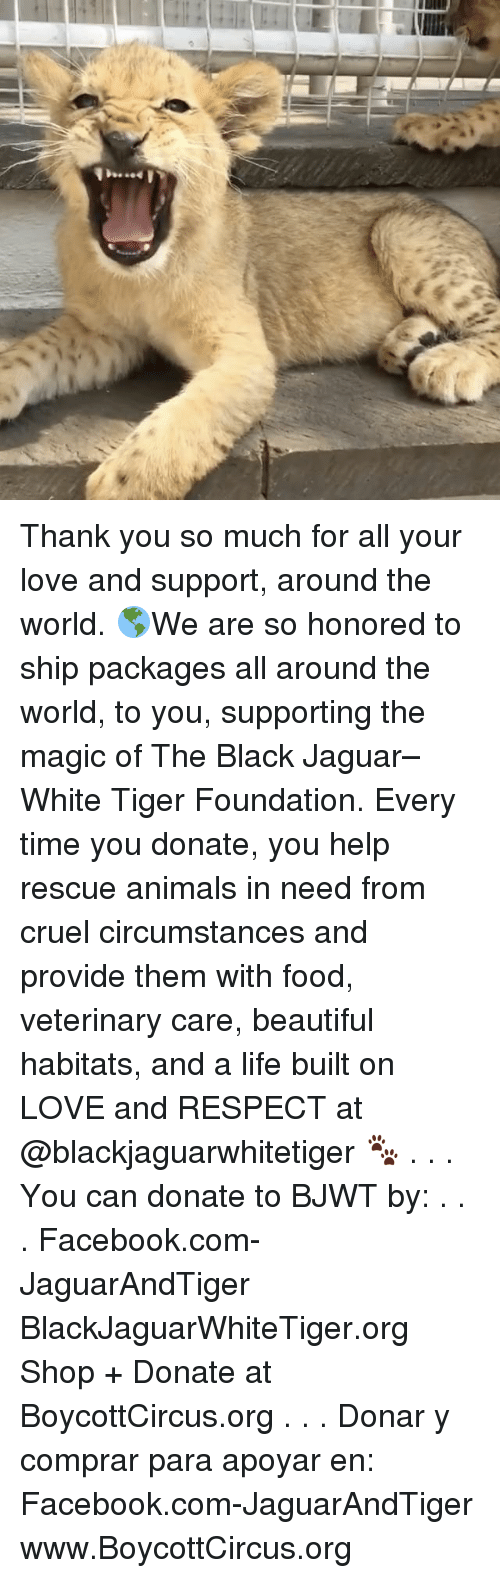 Whitnesses: Thank you so much for all your love and support, around the world. 🌎We are so honored to ship packages all around the world, to you, supporting the magic of The Black Jaguar–White Tiger Foundation. Every time you donate, you help rescue animals in need from cruel circumstances and provide them with food, veterinary care, beautiful habitats, and a life built on LOVE and RESPECT at @blackjaguarwhitetiger 🐾 . . . You can donate to BJWT by: . . . Facebook.com-JaguarAndTiger BlackJaguarWhiteTiger.org Shop + Donate at BoycottCircus.org . . . Donar y comprar para apoyar en: Facebook.com-JaguarAndTiger www.BoycottCircus.org